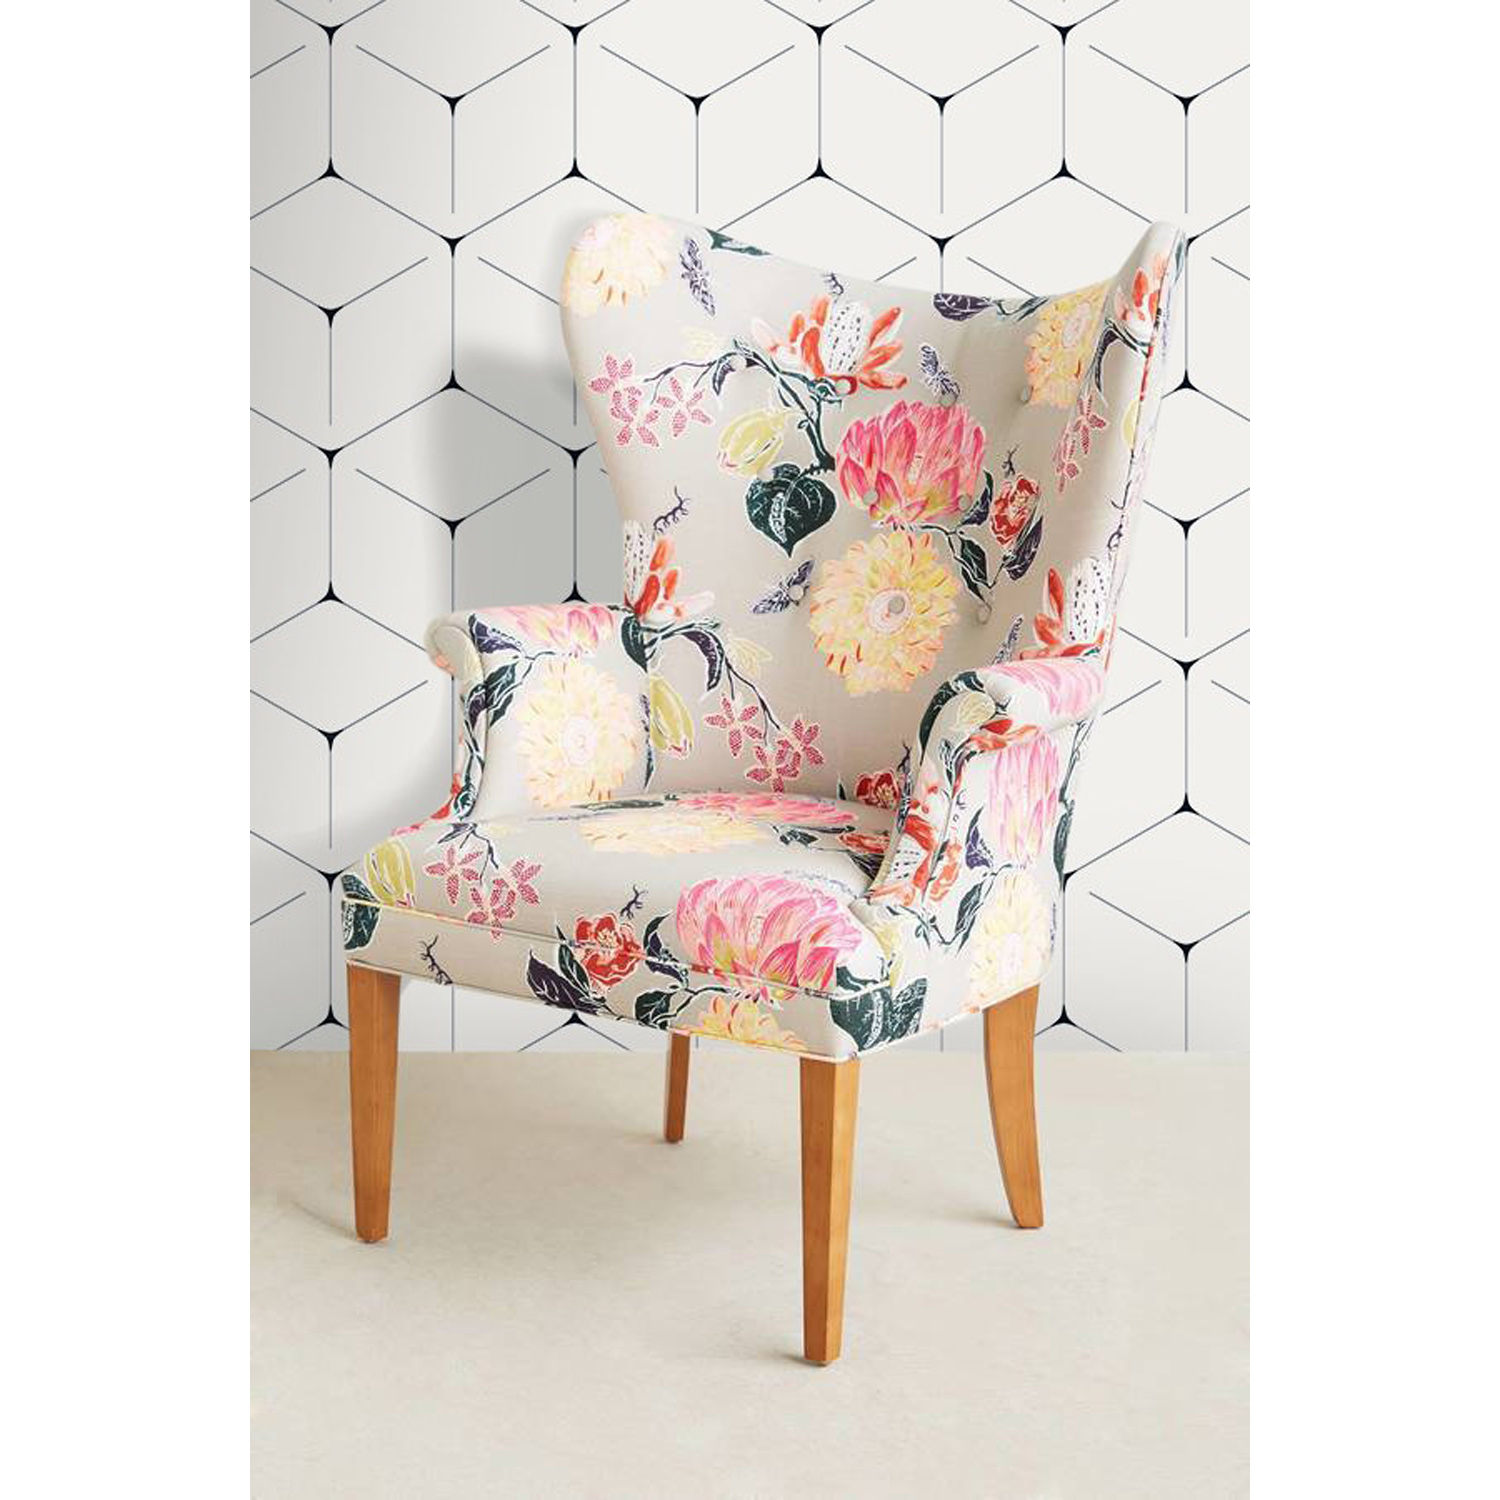 Unique Floral Accent Chair Design